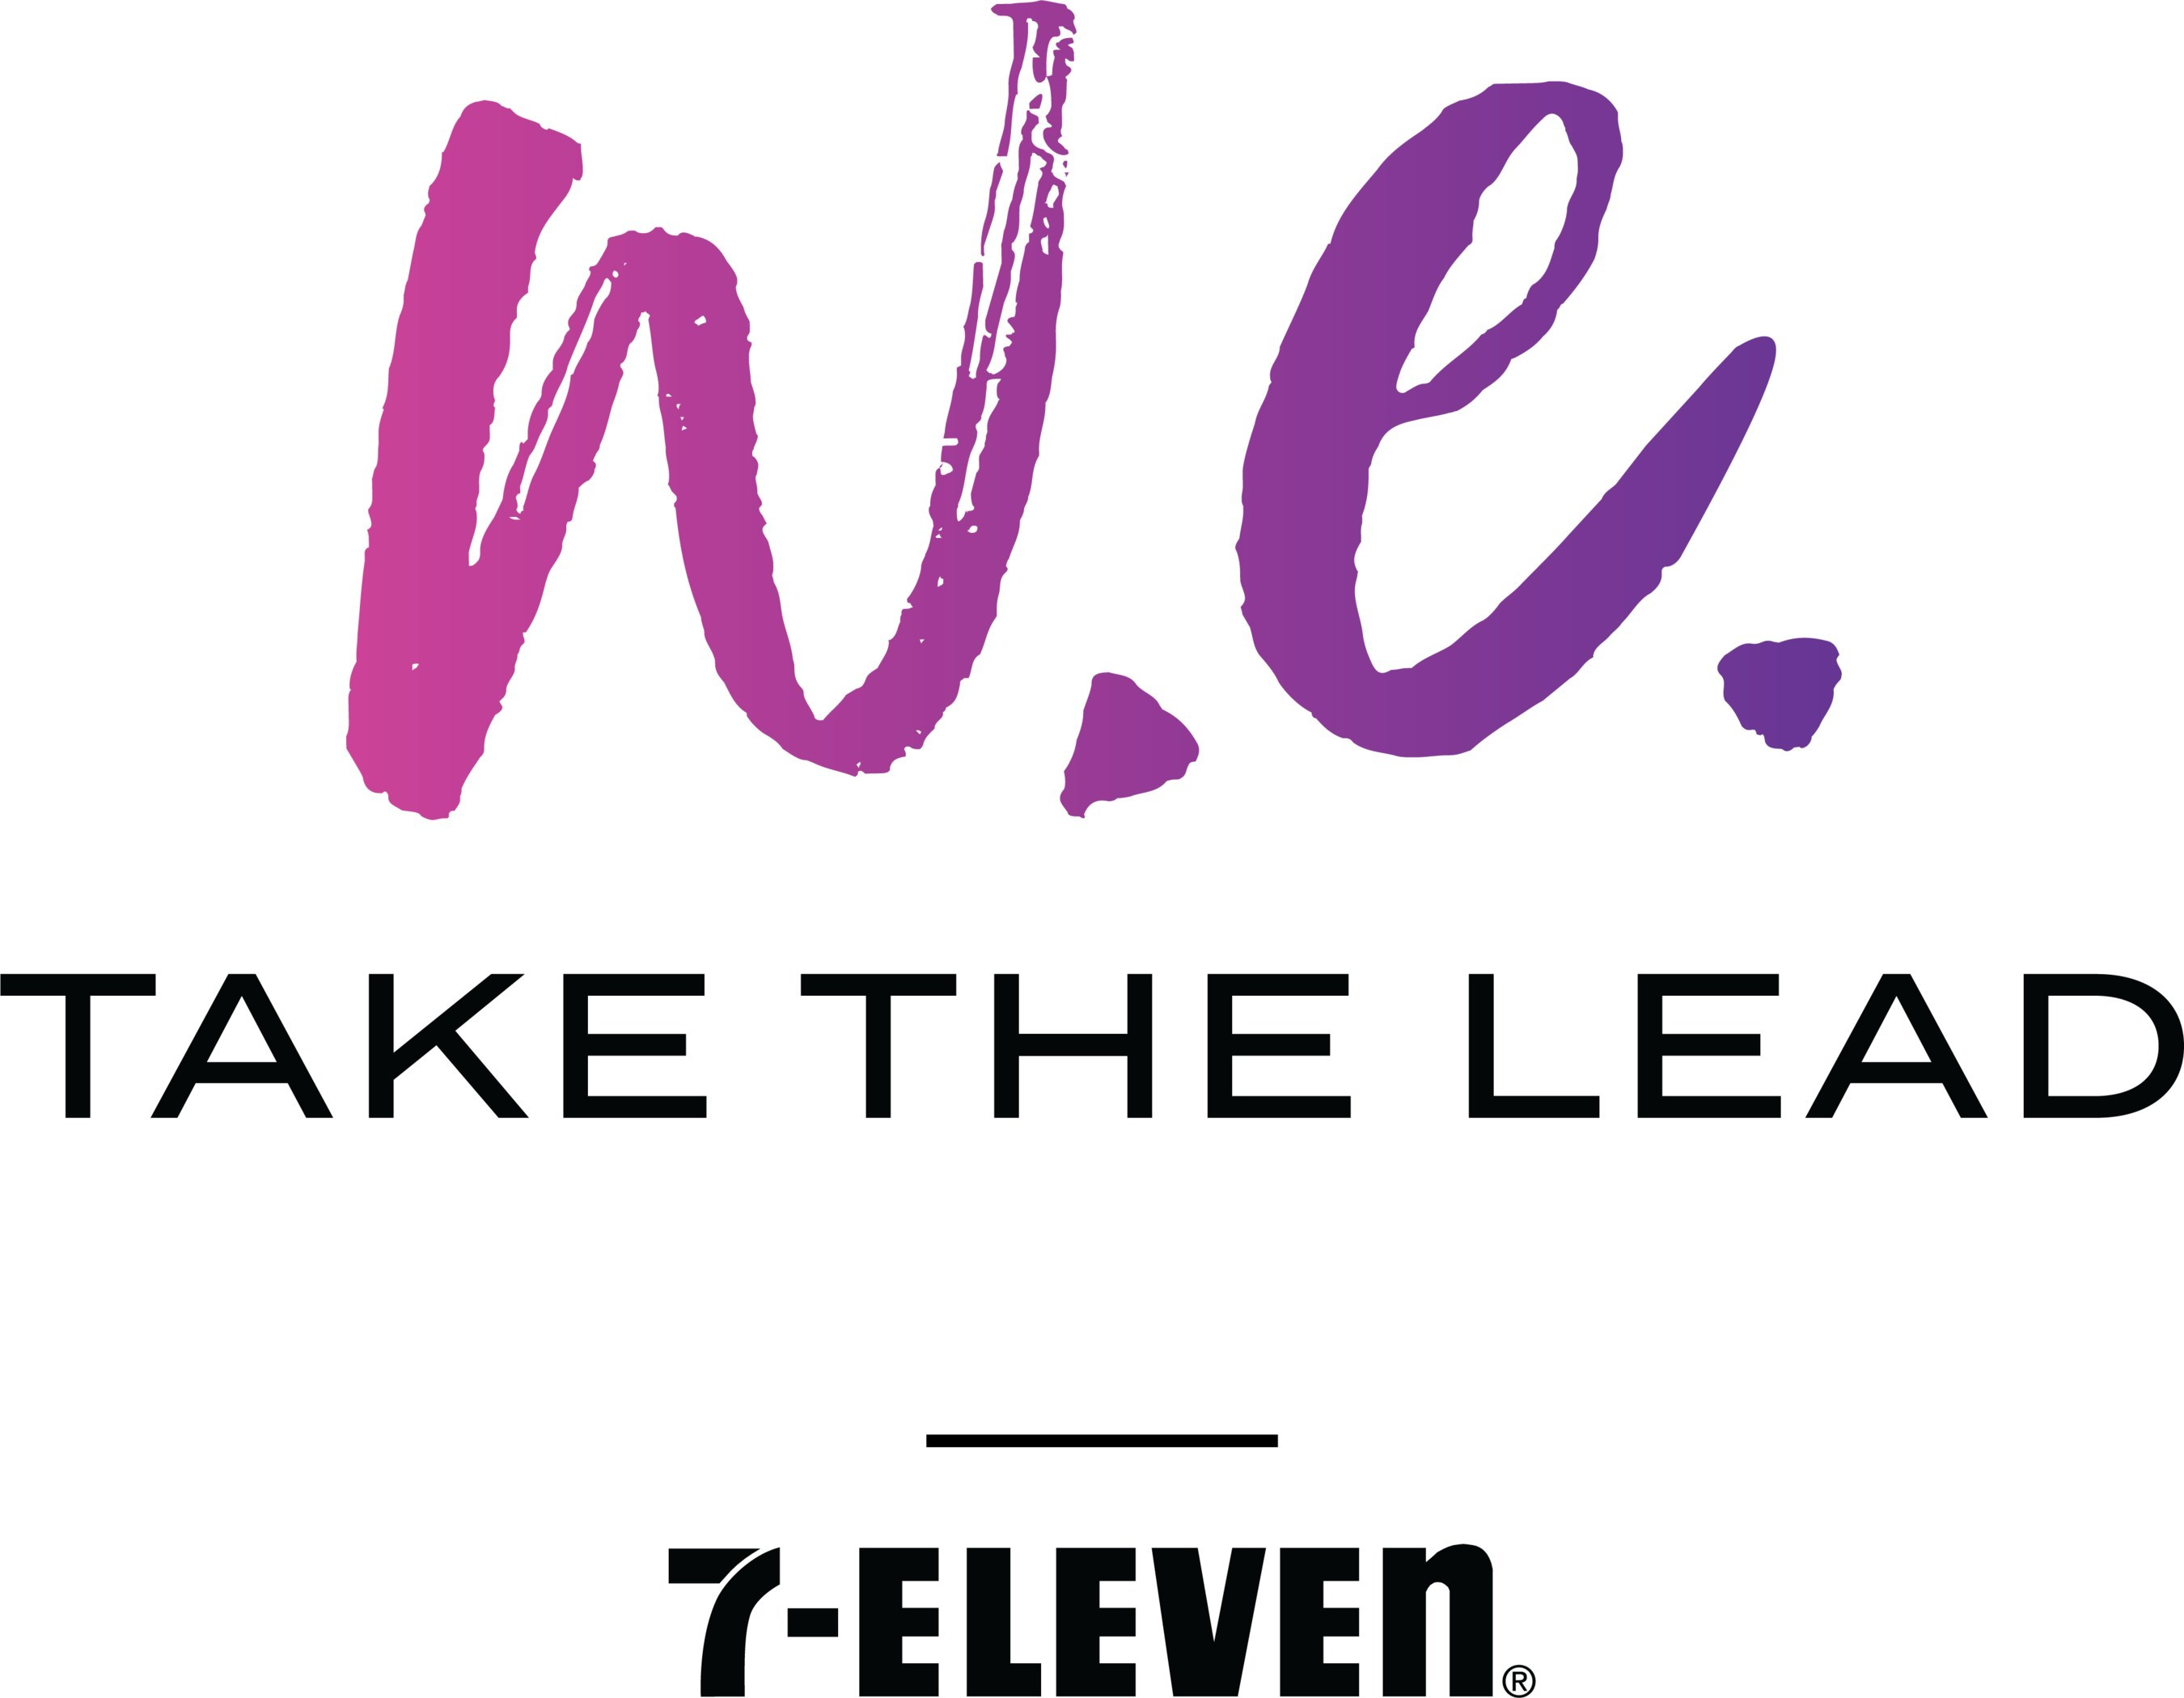 In conjunction with National Women's History Month, 7-Eleven, Inc. kicks off its second 'W.E. Take the Lead' Women's Franchise Giveaway Contest, targeted exclusively to women entrepreneurs. The 7-Eleven contest is open to all eligible women interested in becoming an independent business owner with the world's largest convenience retailer. One deserving woman will be awarded a fee-free* 7-Eleven franchise, a value of up to $190,000.